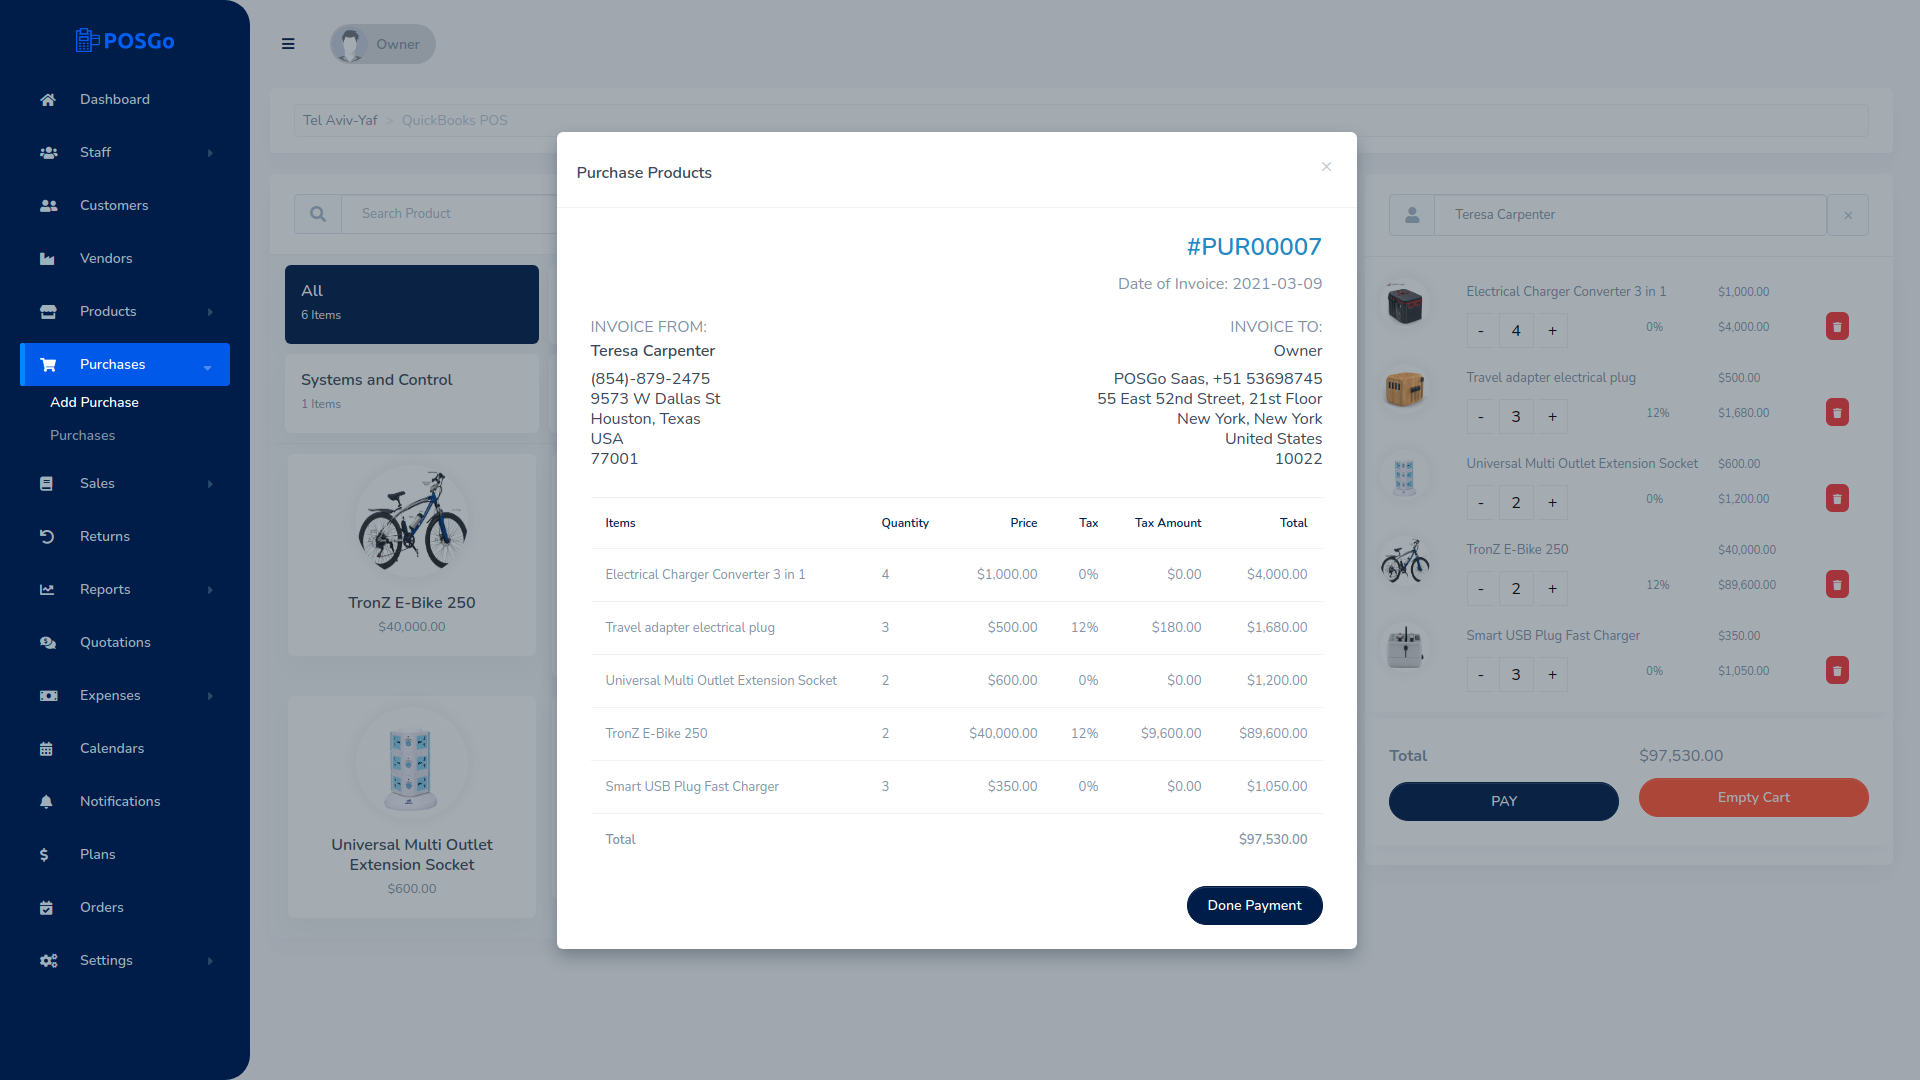 POSGo SaaS - Purchase and Sales Management Tool - 6